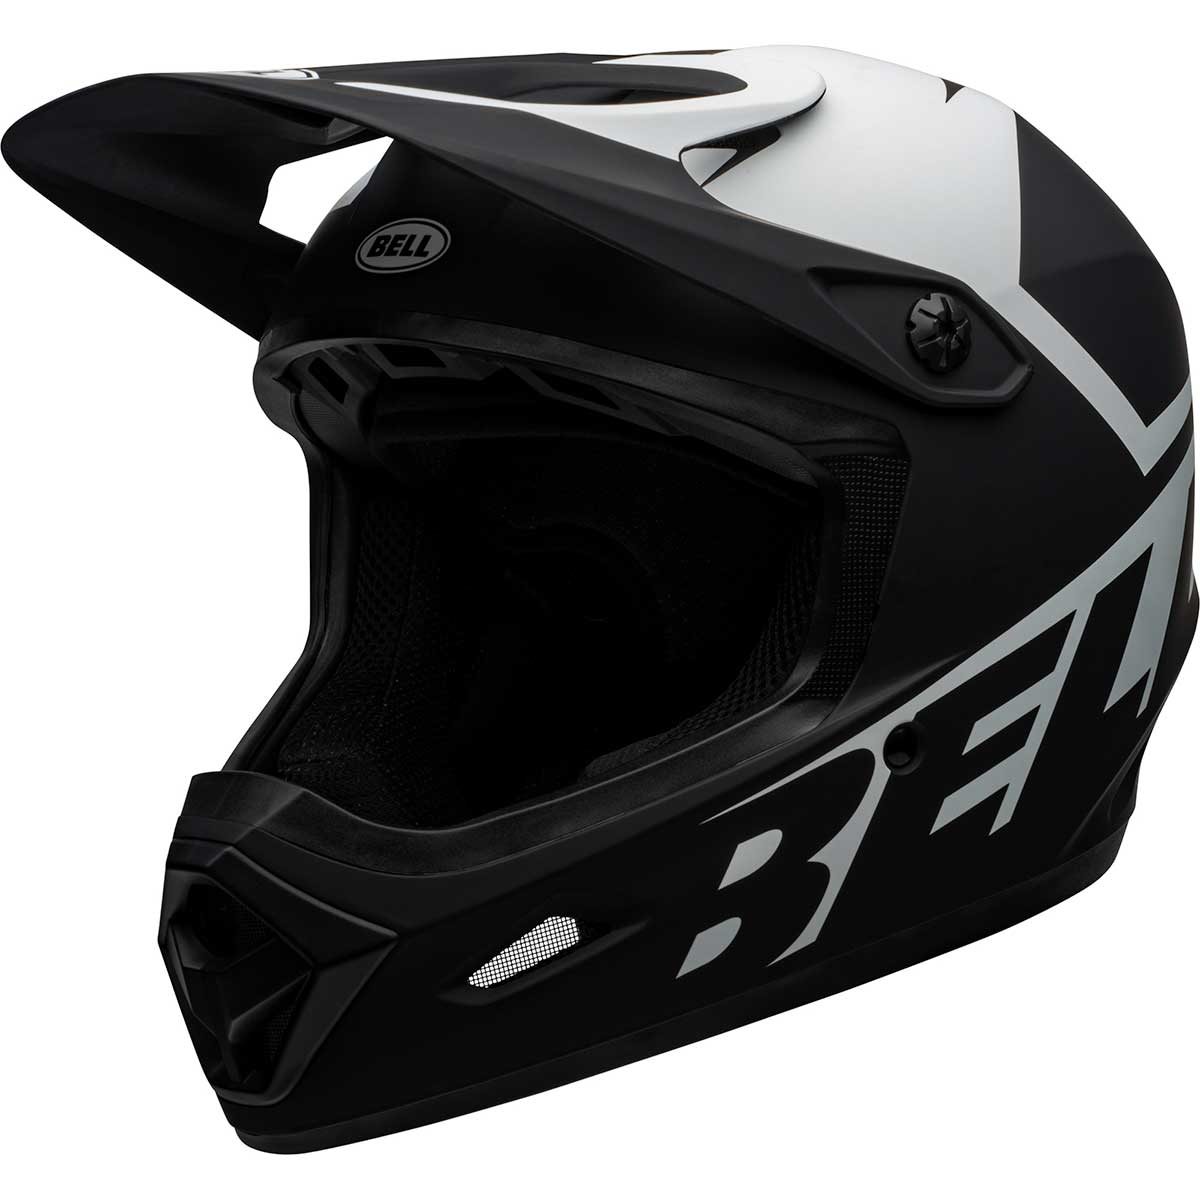 Bell Transfer Full-Face Helmet in Matte Black and White